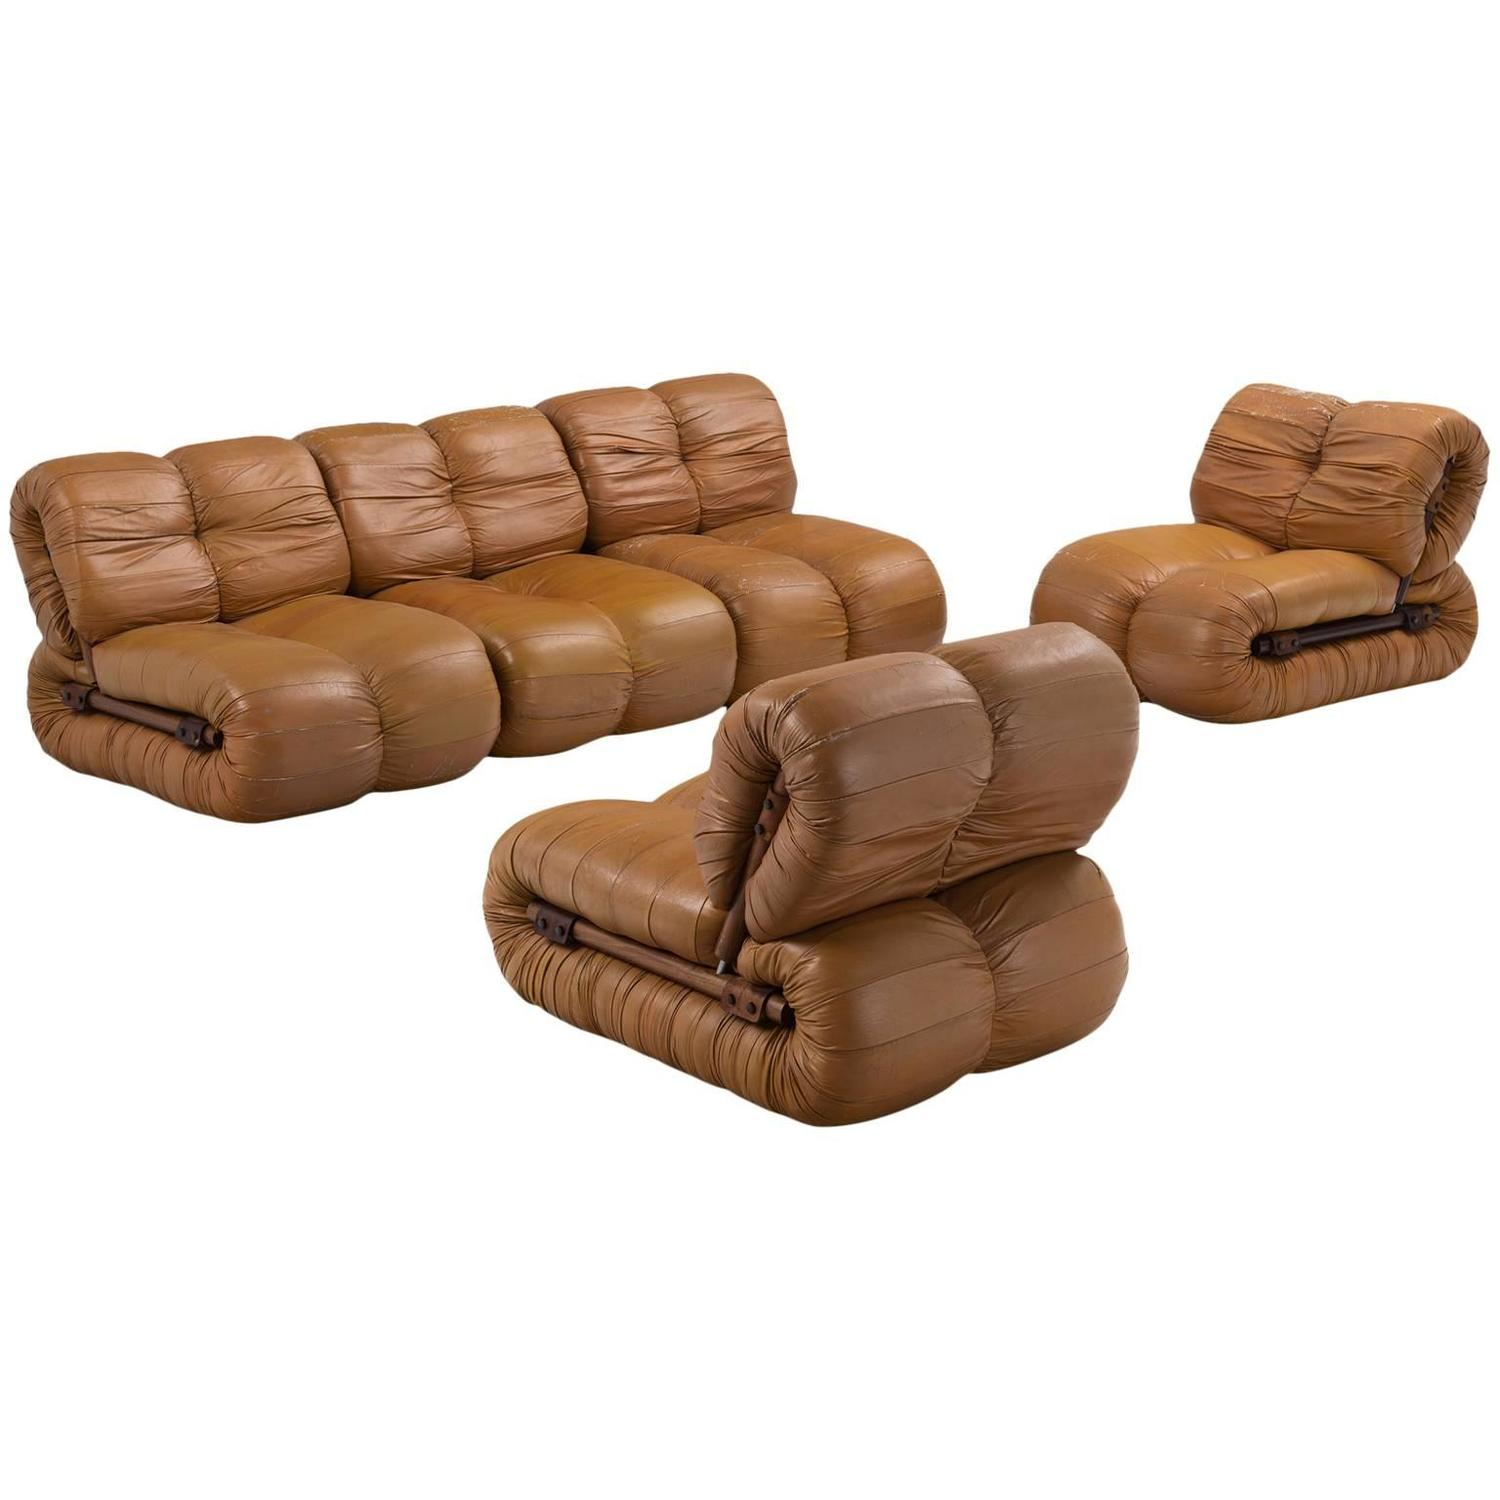 percival lafer modular sofa in rosewood and cognac leather for sale at 1stdibs. Black Bedroom Furniture Sets. Home Design Ideas